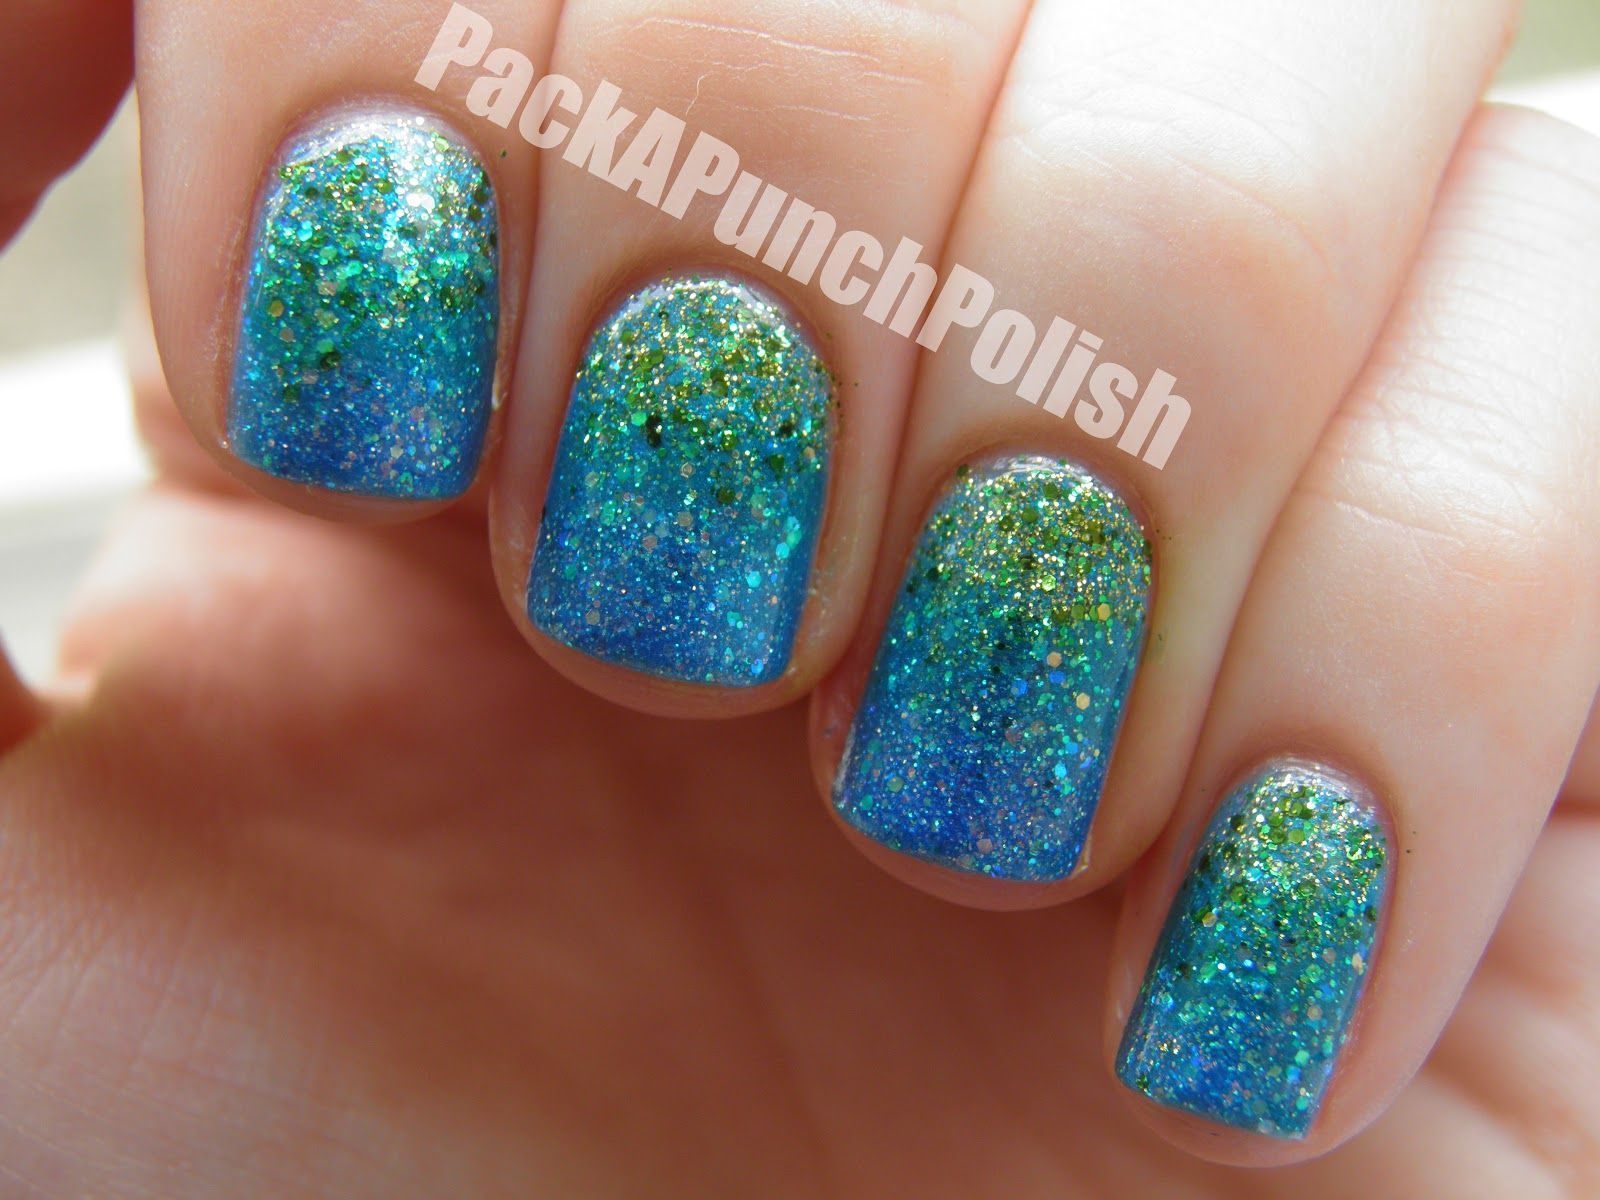 PackAPunchPolish: Blue and Green Glitter Gradient | Makeup ...